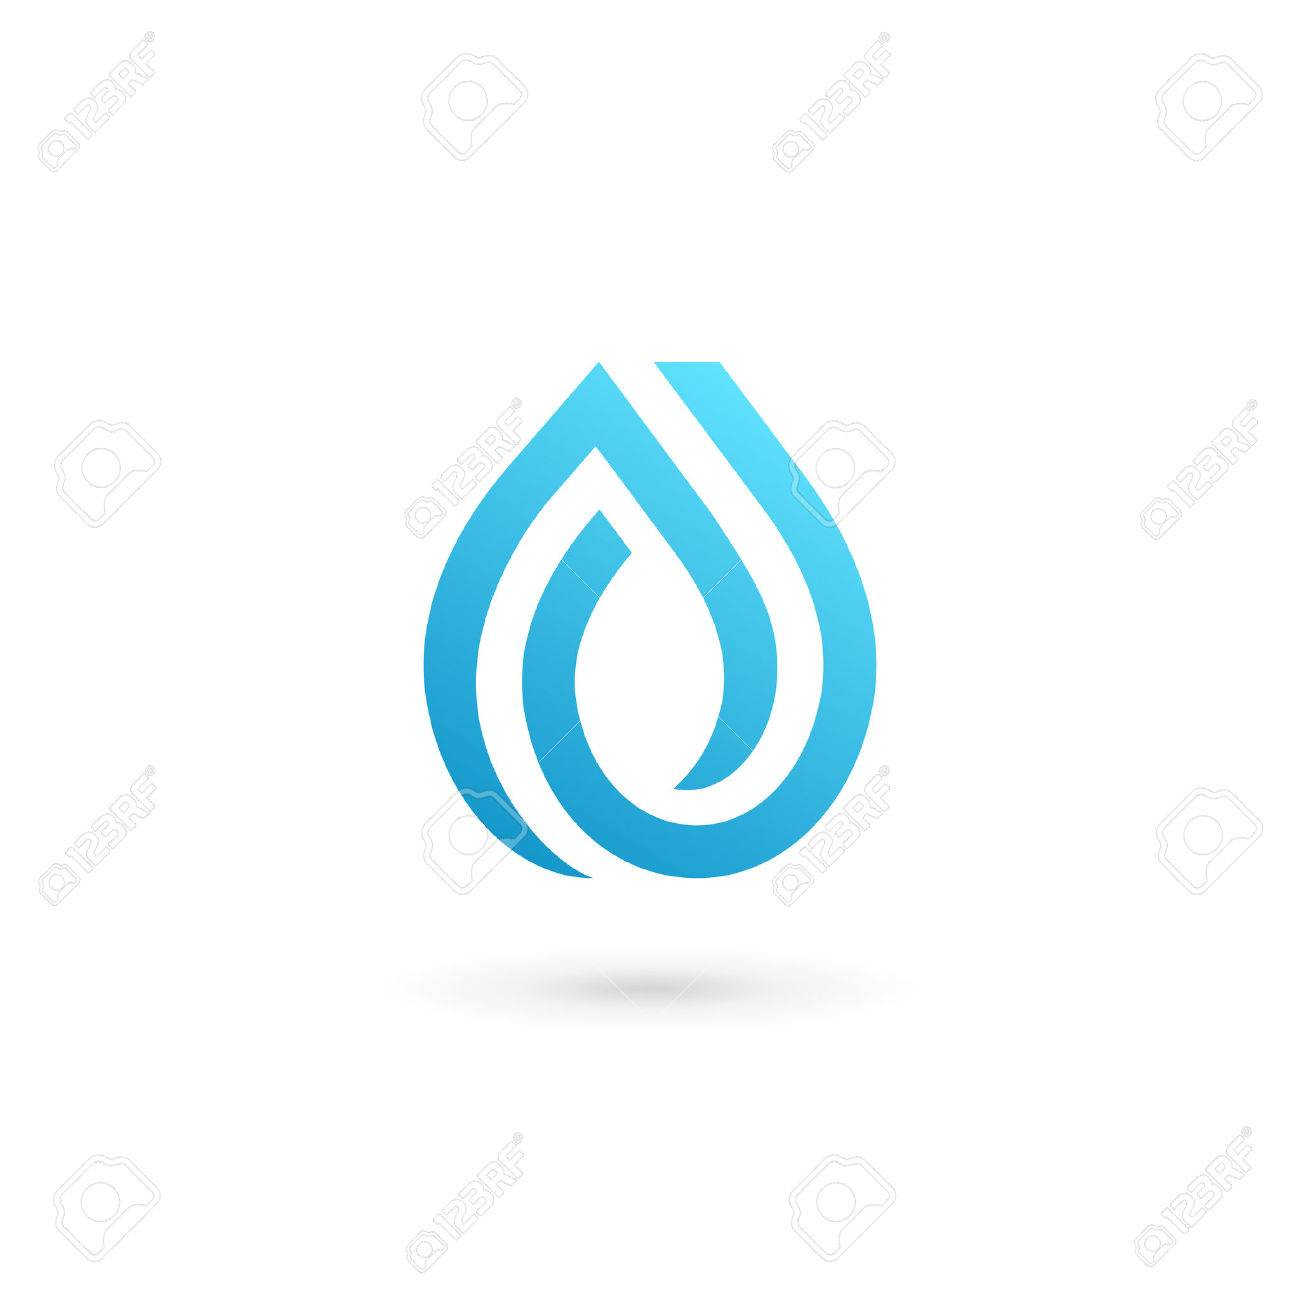 Water drop symbol design template icon may be used in ecological water drop symbol design template icon may be used in ecological medical chemical biocorpaavc Image collections